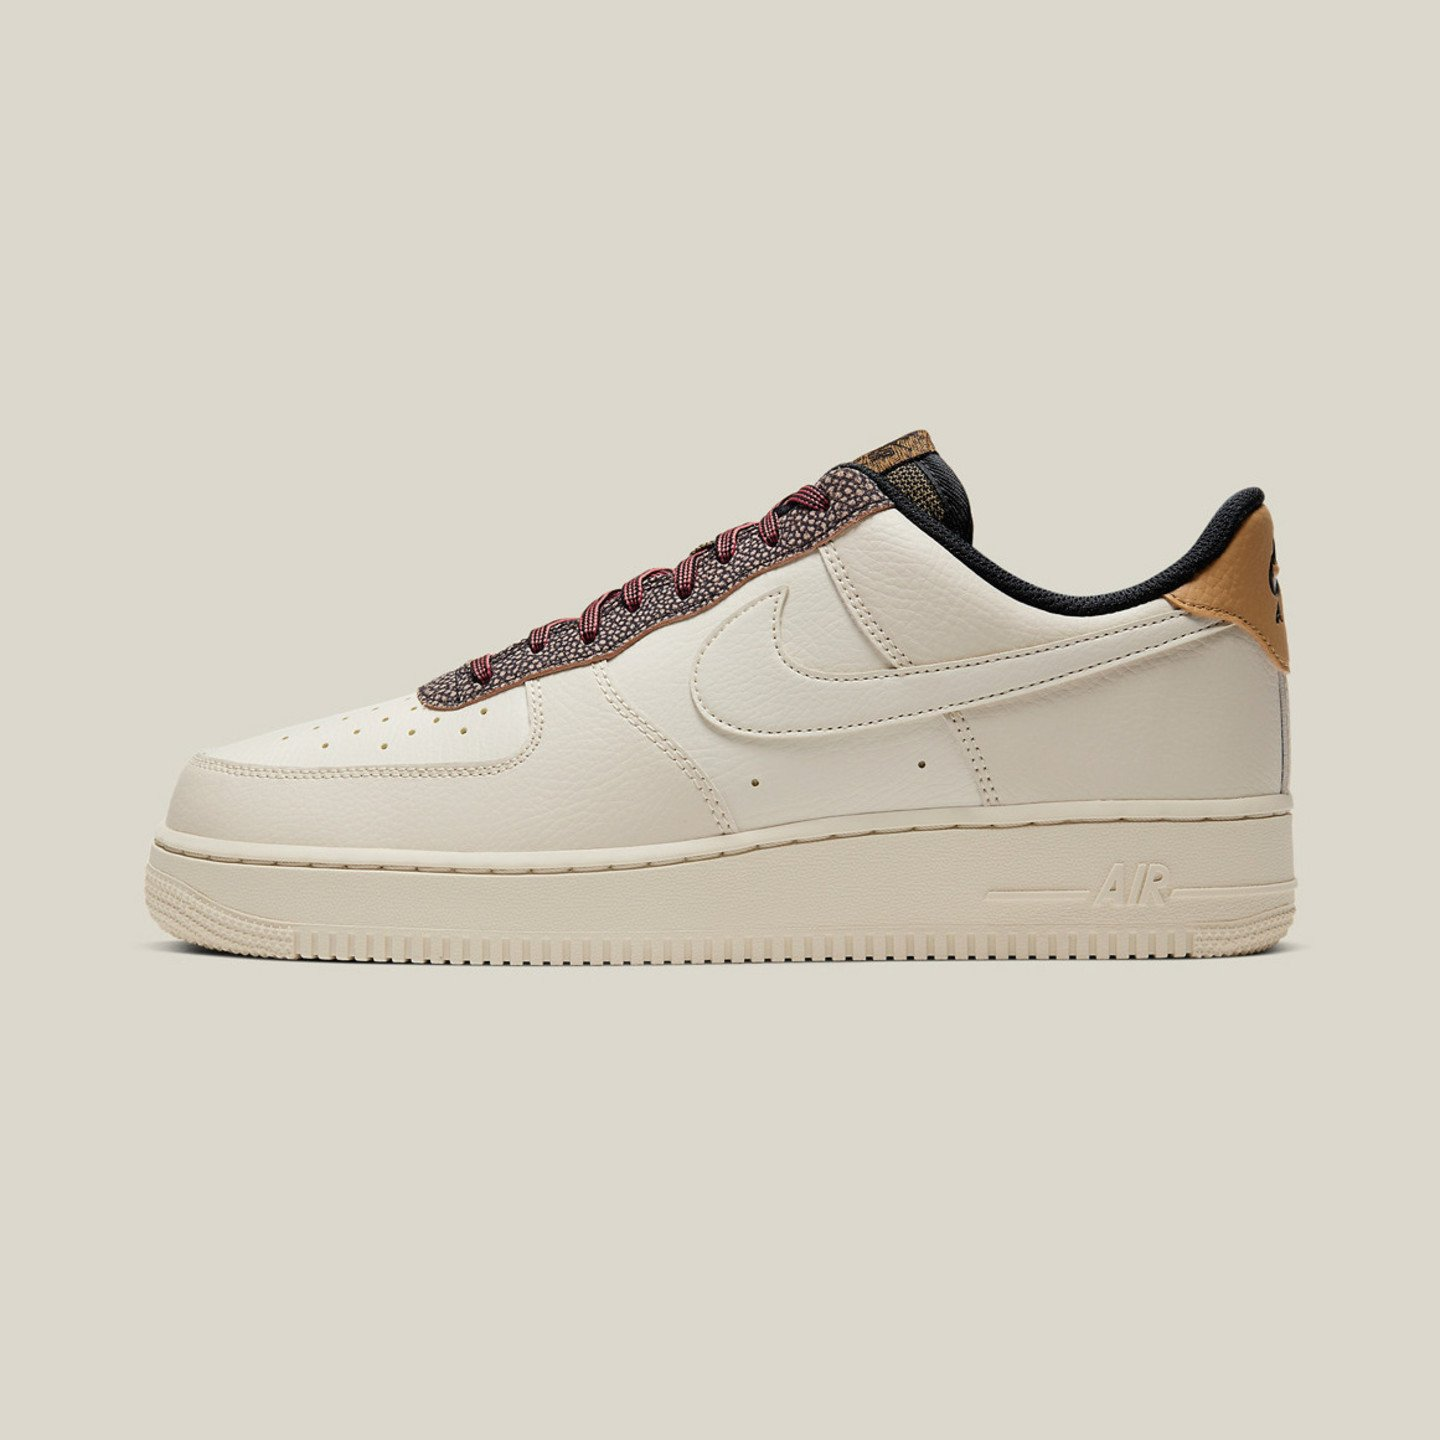 Nike Air Force 1 ´07 LV8 Fossil / Wheat / Shimmer CK4363-200